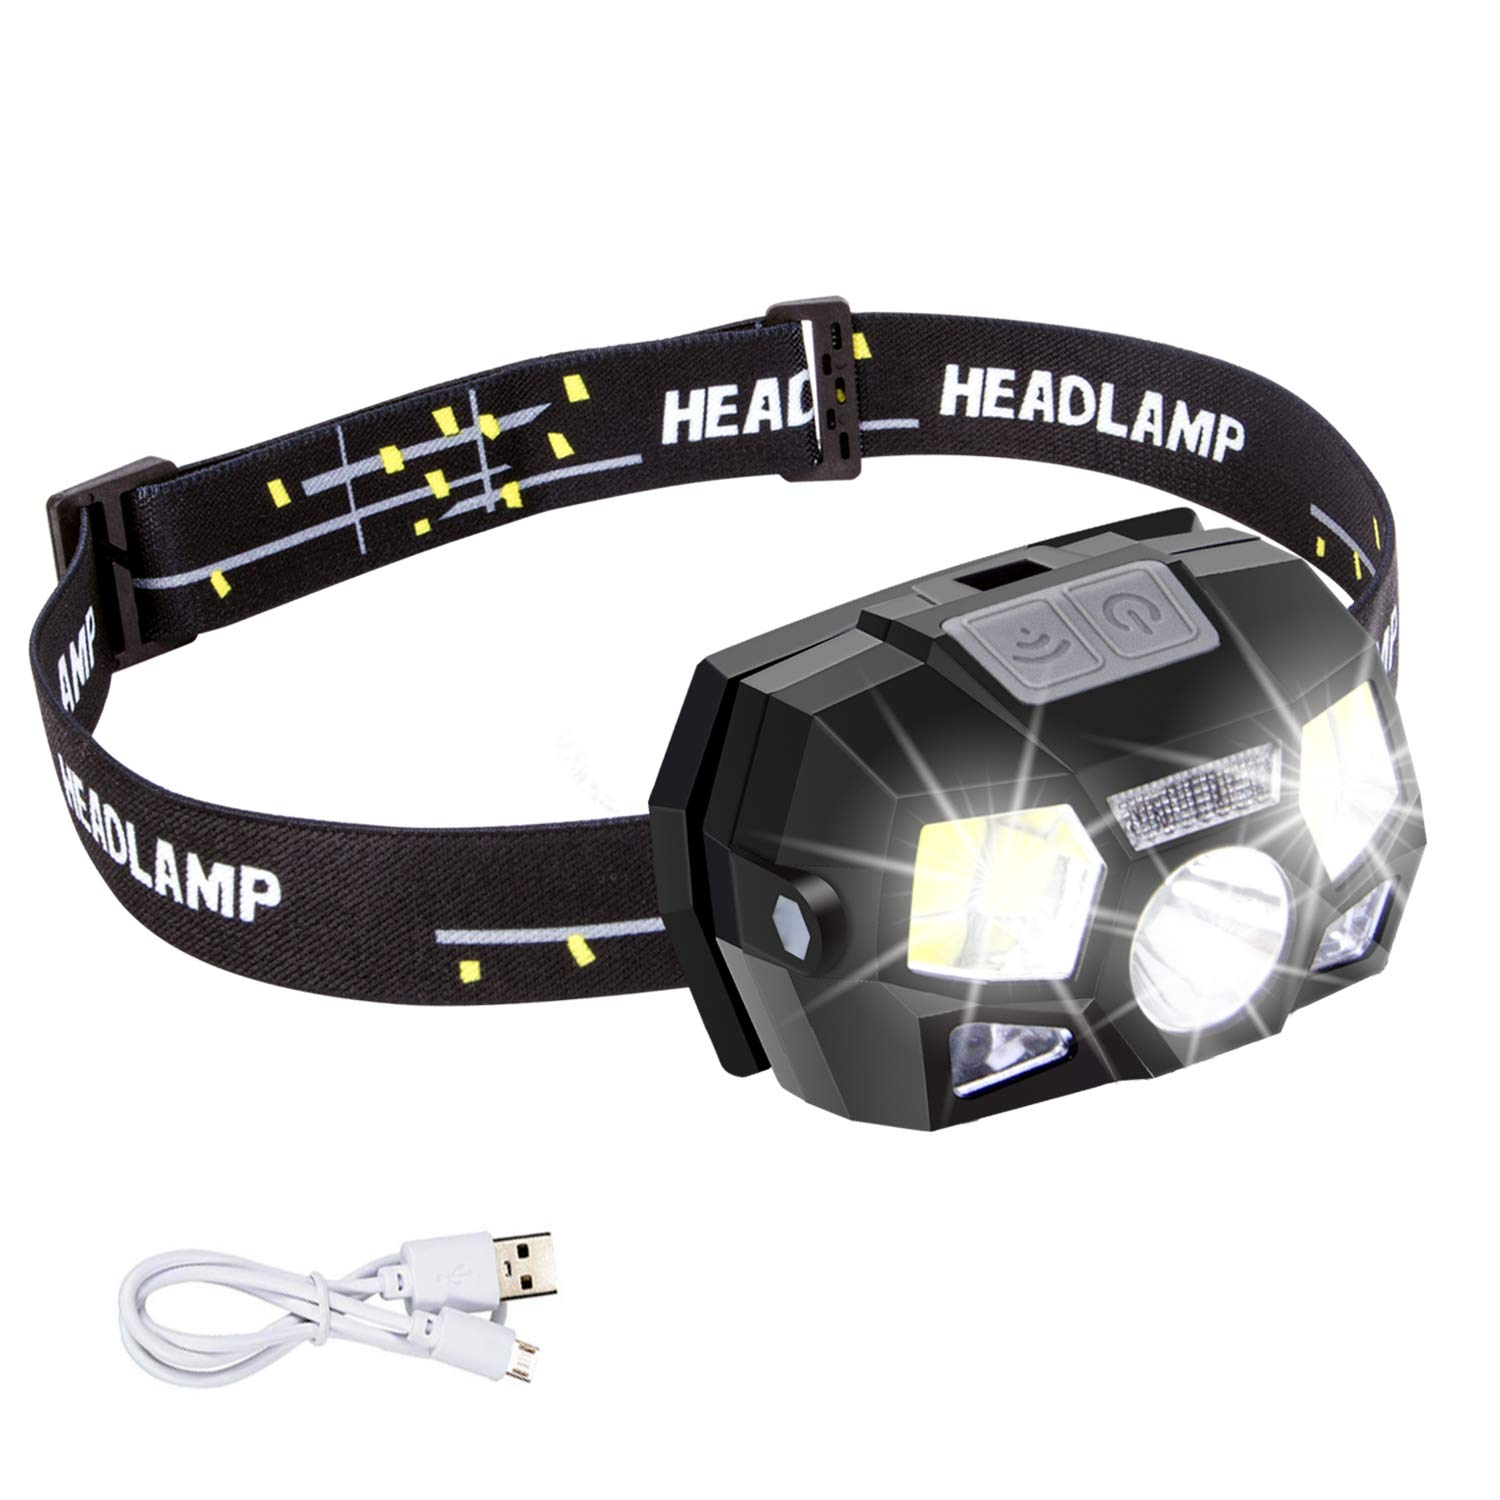 Headlamp Flashlight Rechargeable with USB,Motion Sensor Ultra Bright 600 Lumen LED+COB Work Headlight Use Time Up to 15H,5 Bright Modes,Waterproof Head Lamp for Running,Camping,Fishing,Hunting by SUNGME